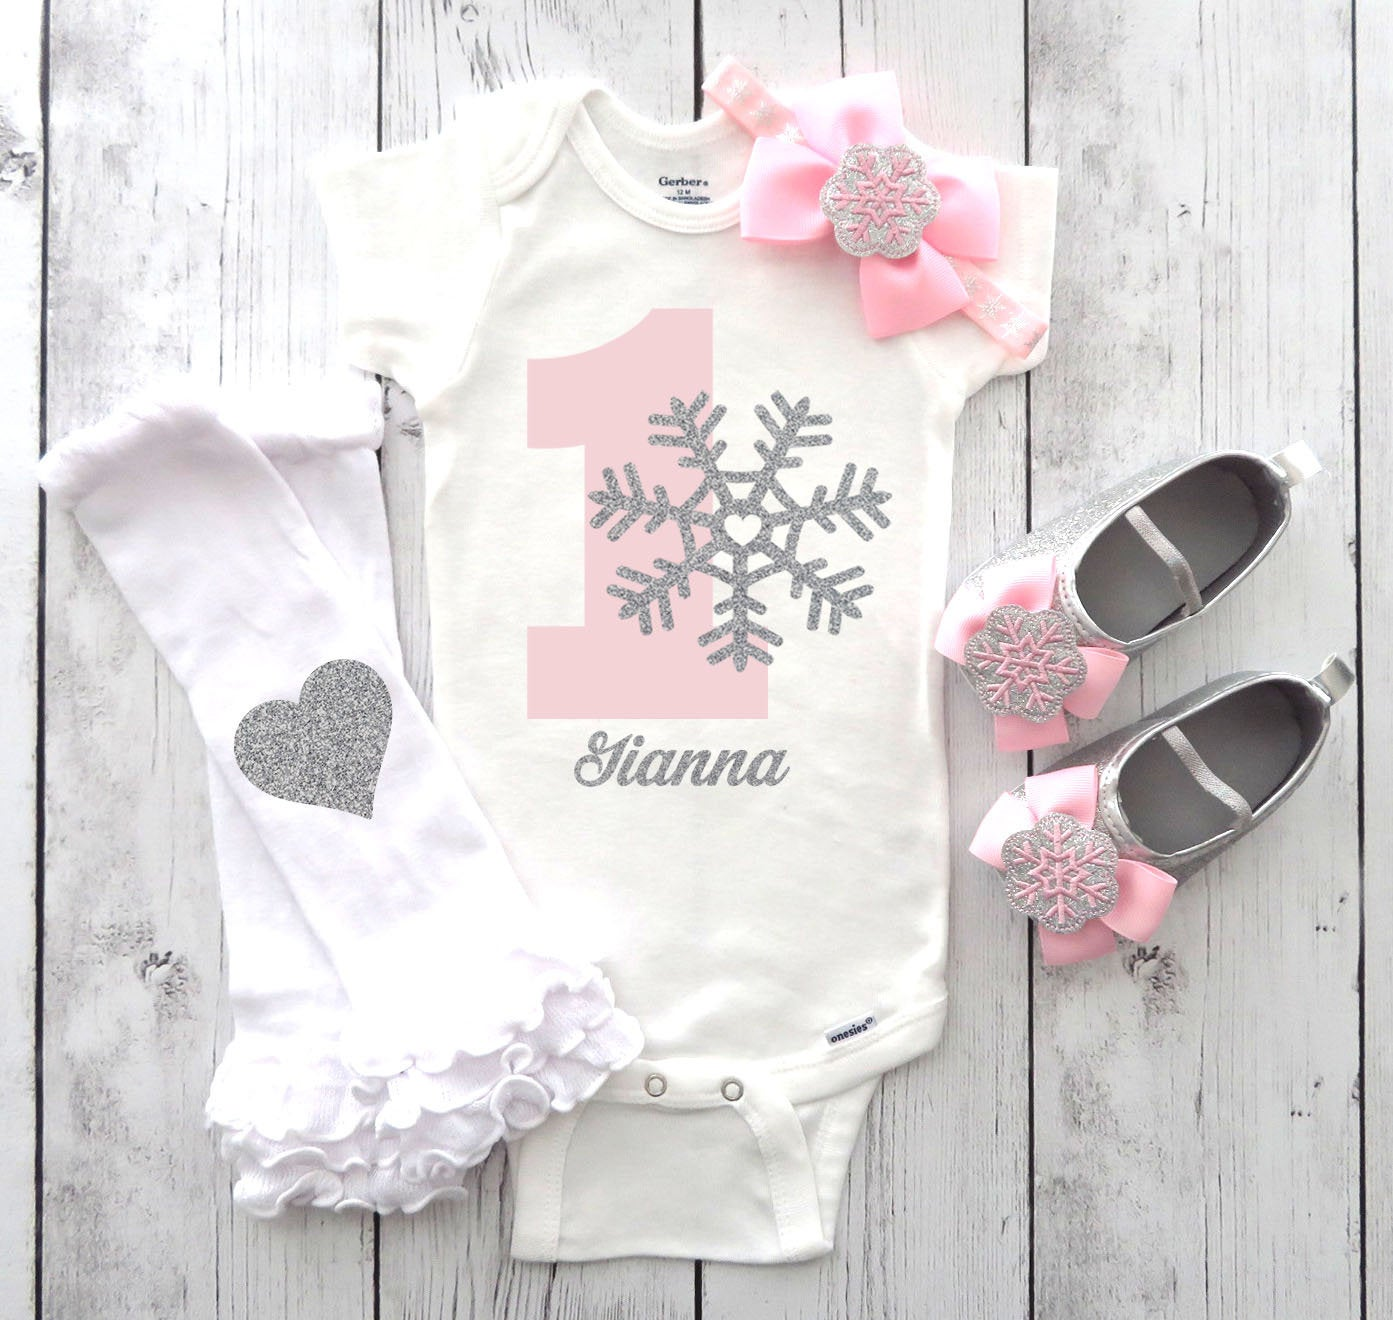 Snowflake First Birthday Onesie with matching silver glitter shoes - pink silver snowflake, snowflake name, snow much fun, winter onederland